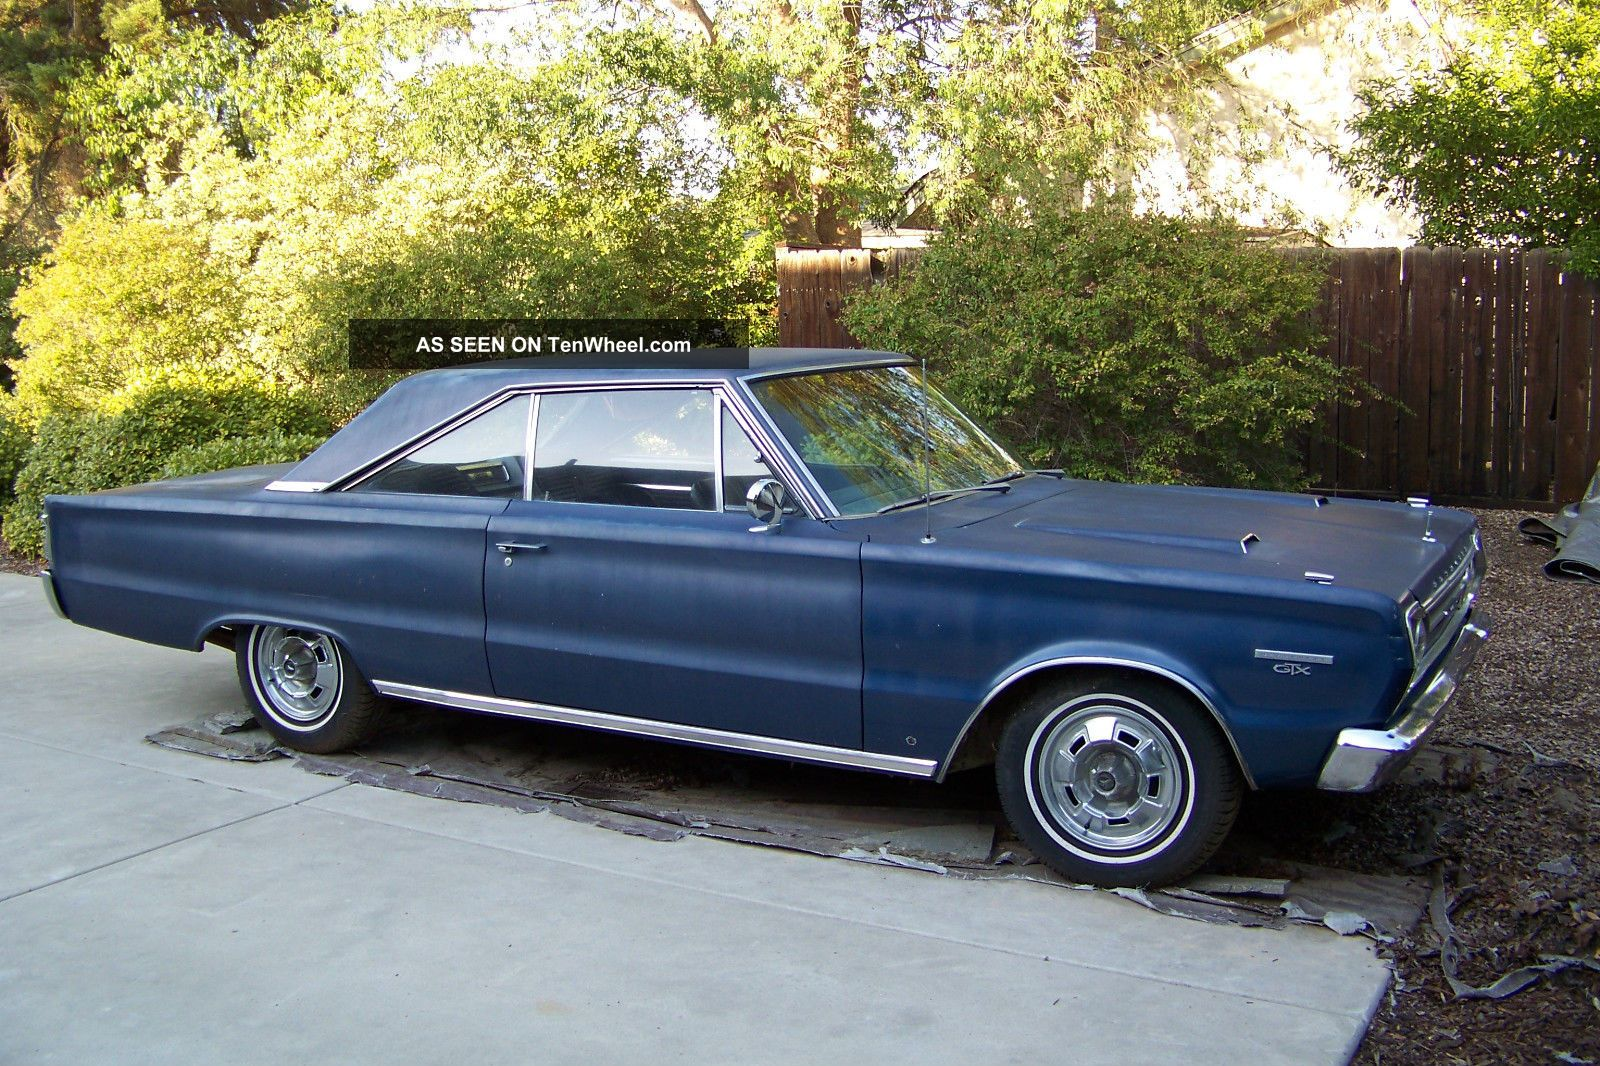 1967 Plymouth Belvedere Gtx 440 Commando 1 - Owner Other photo